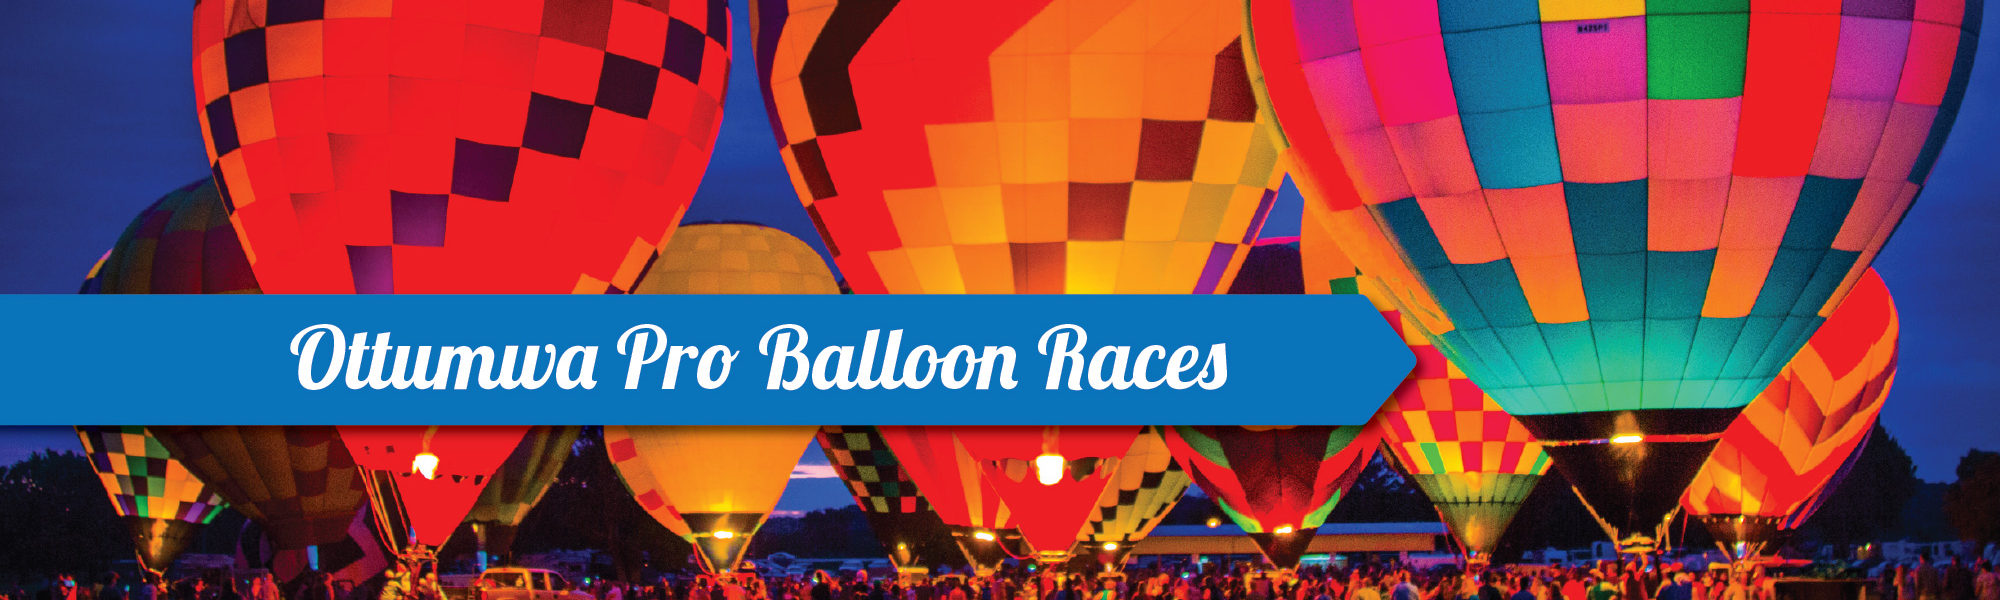 Central Iowa Tourism Region | Ottumwa Pro Balloon Races